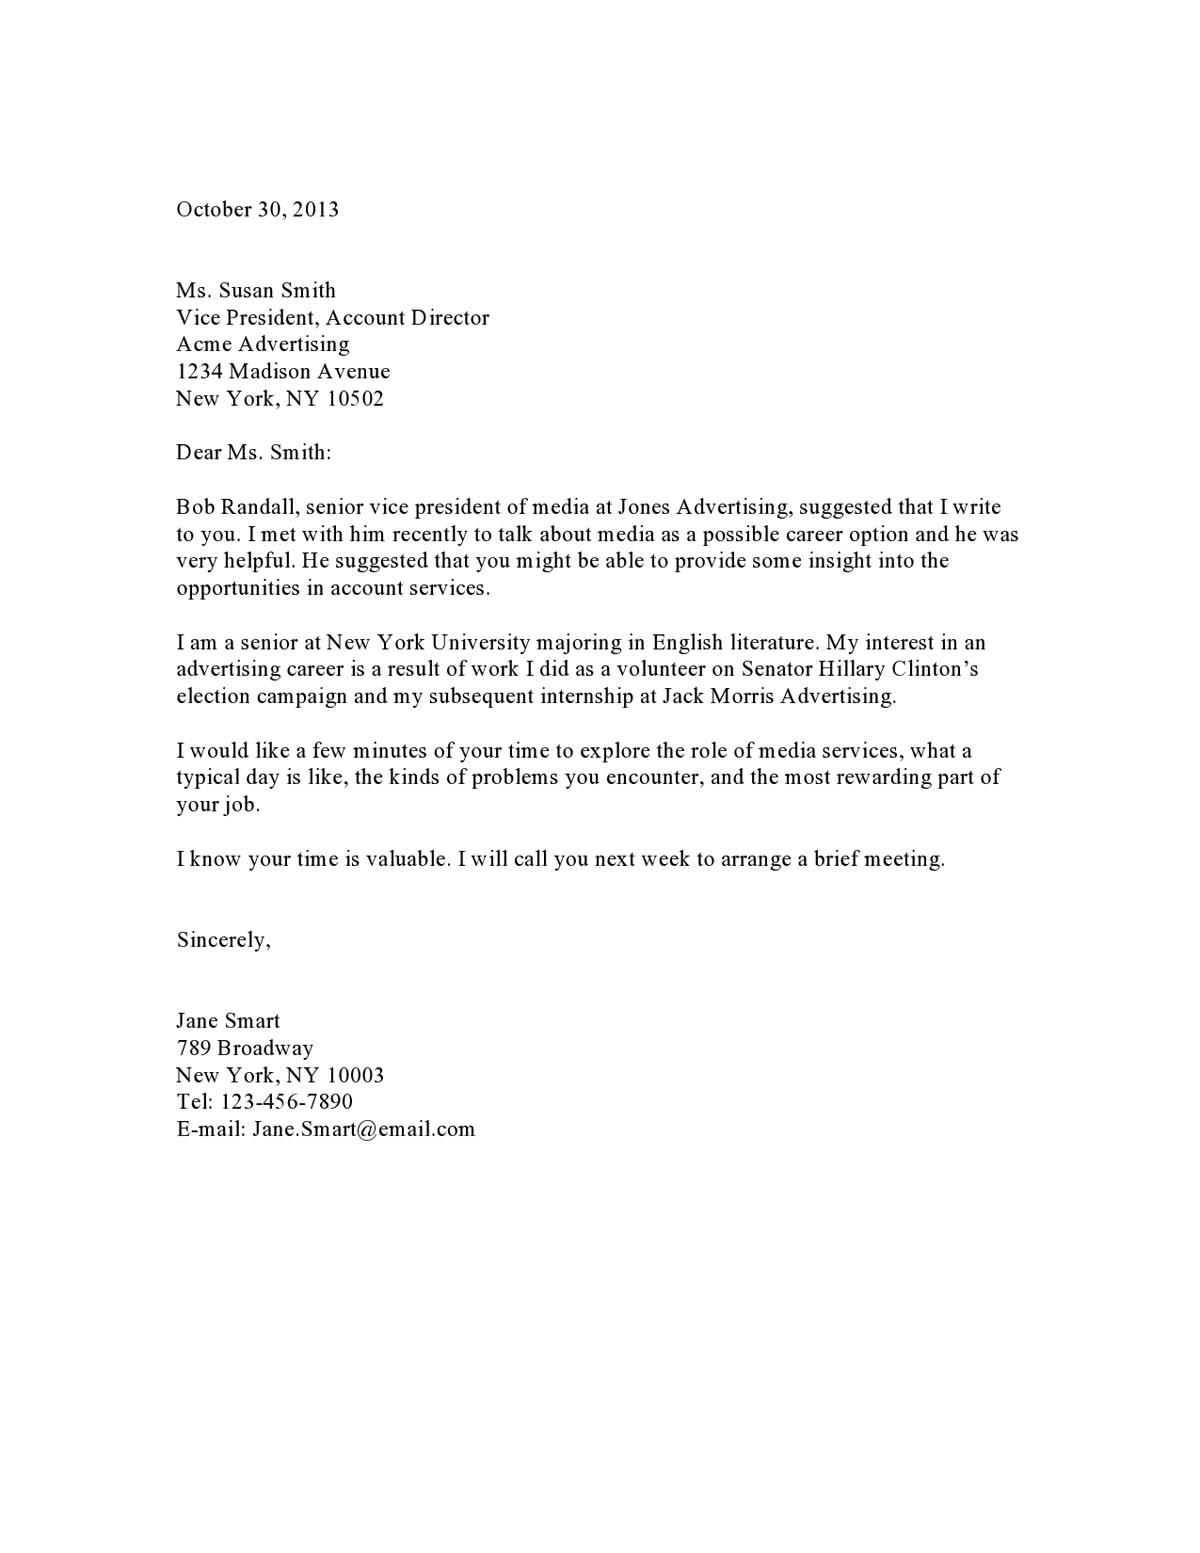 great short cover letters - sample cover letter for applying a job